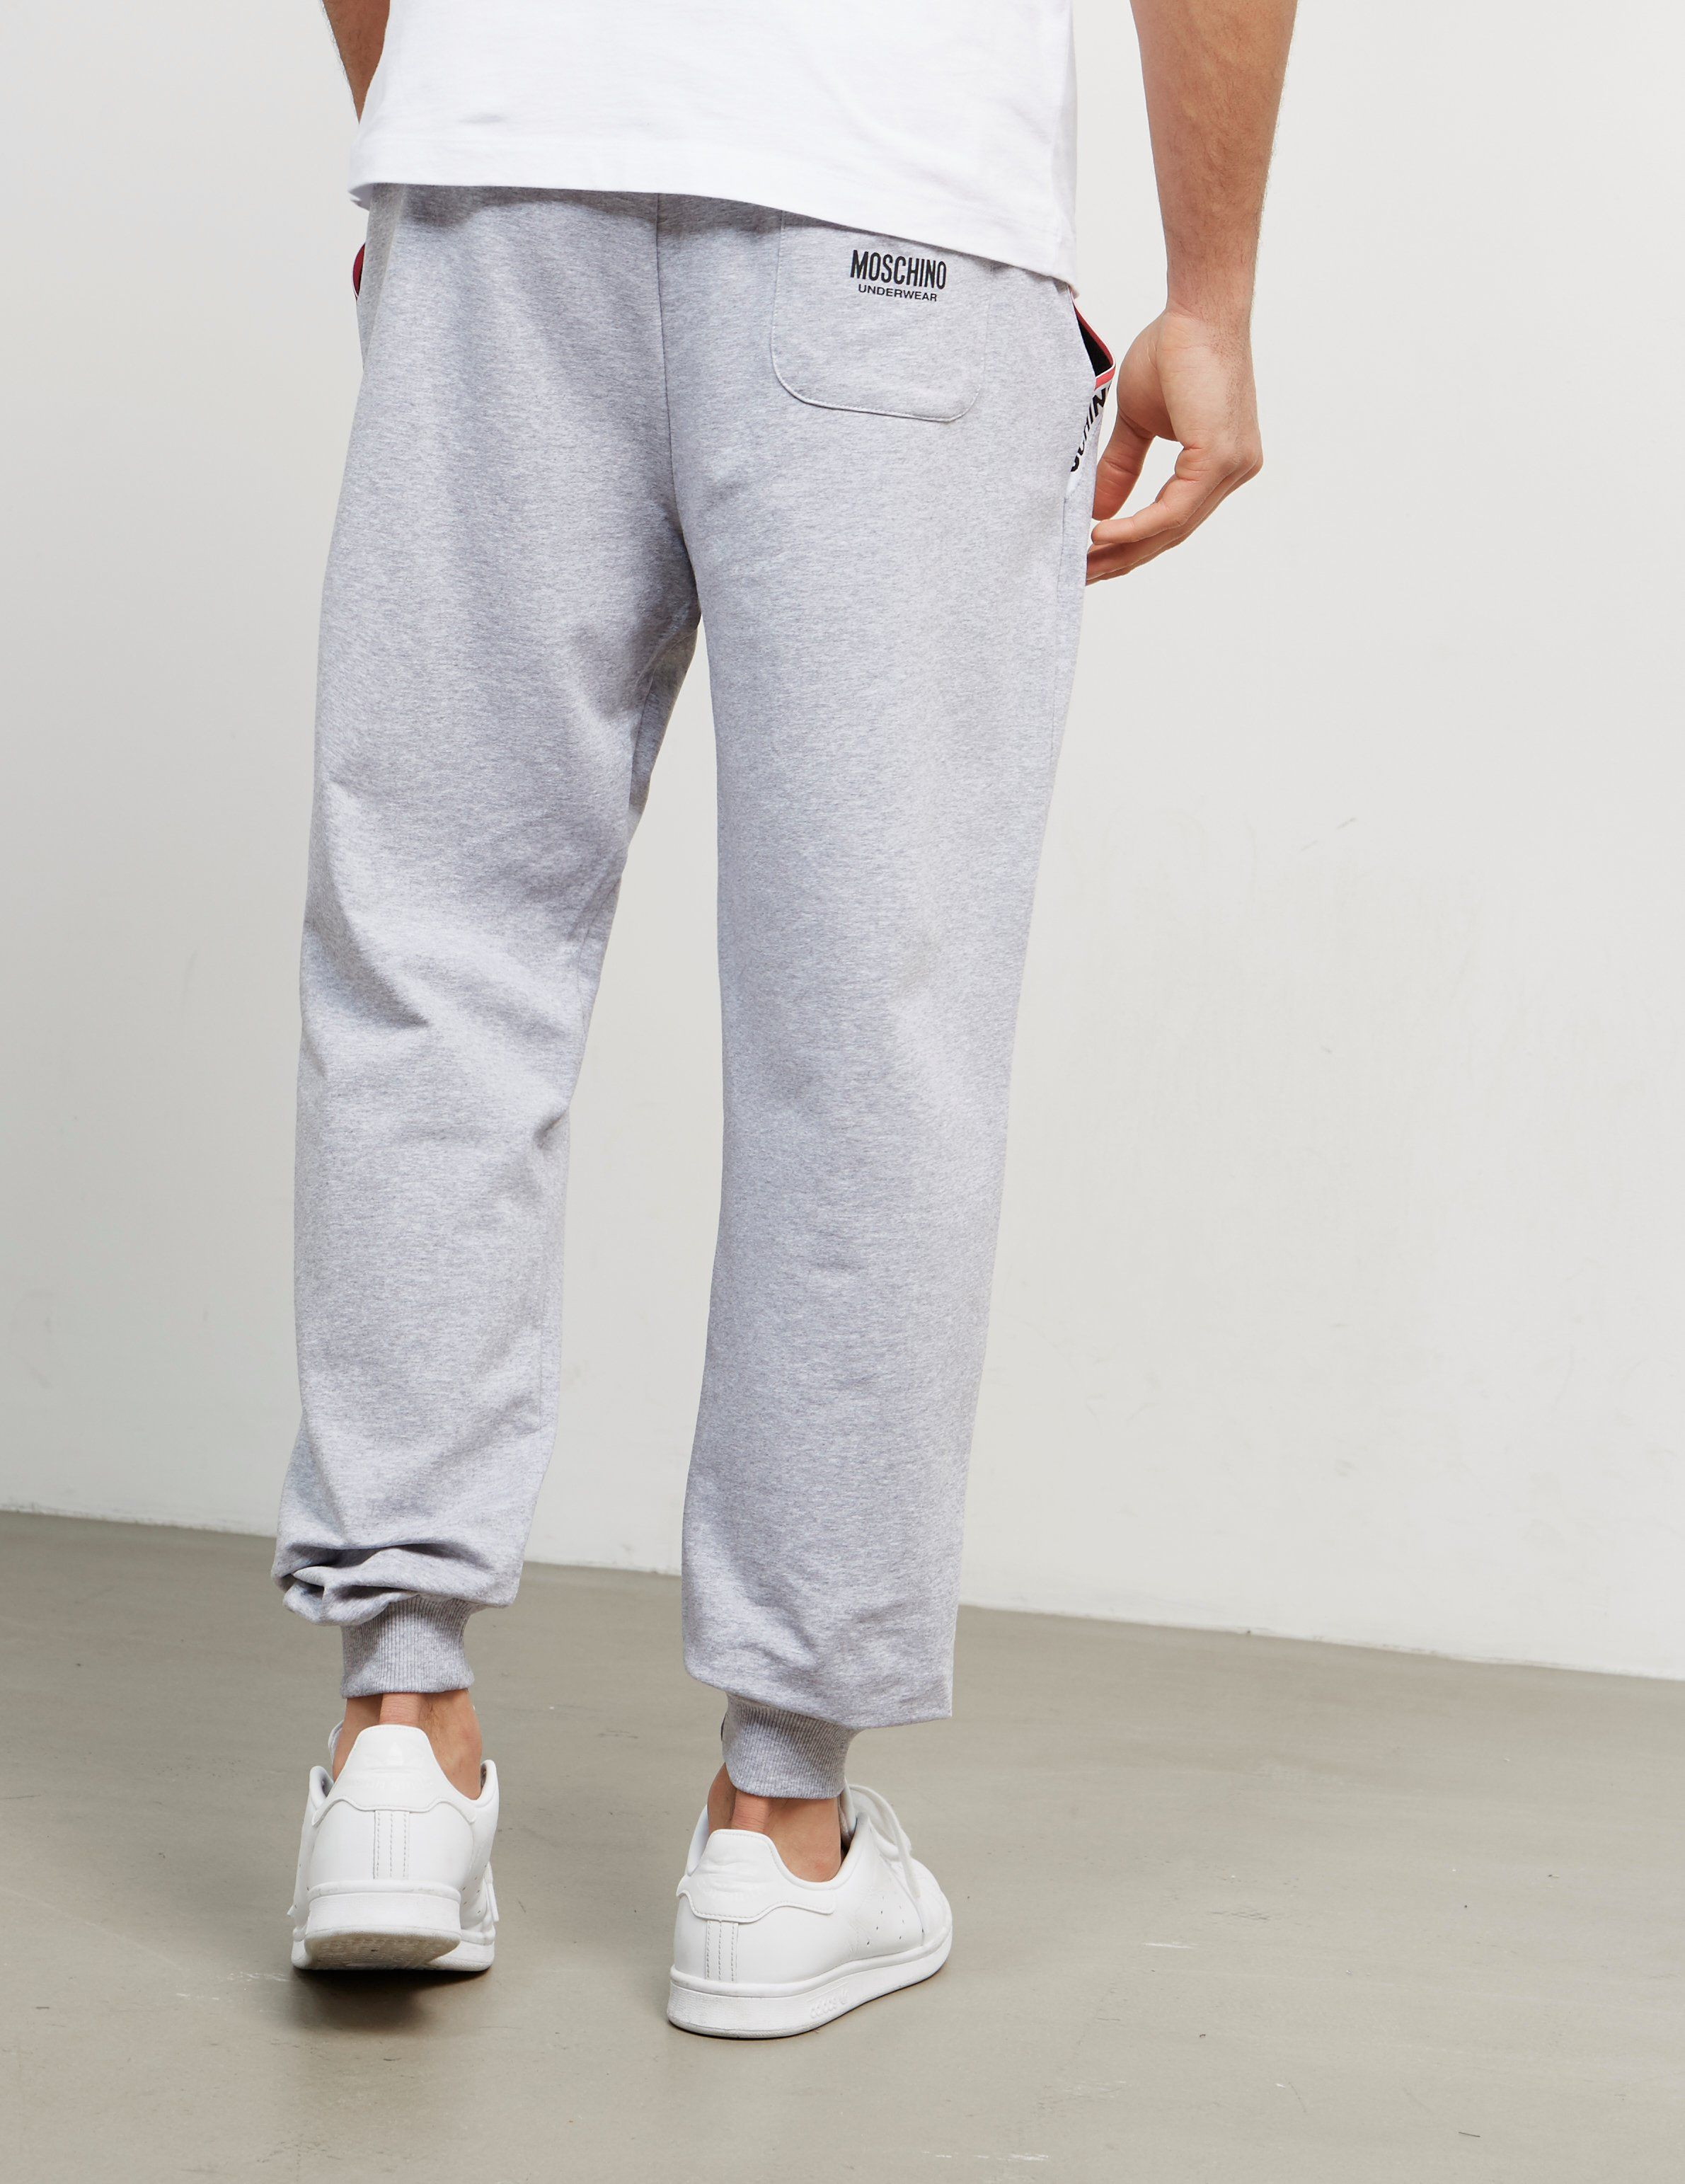 Moschino Tape Cuffed Track Pants